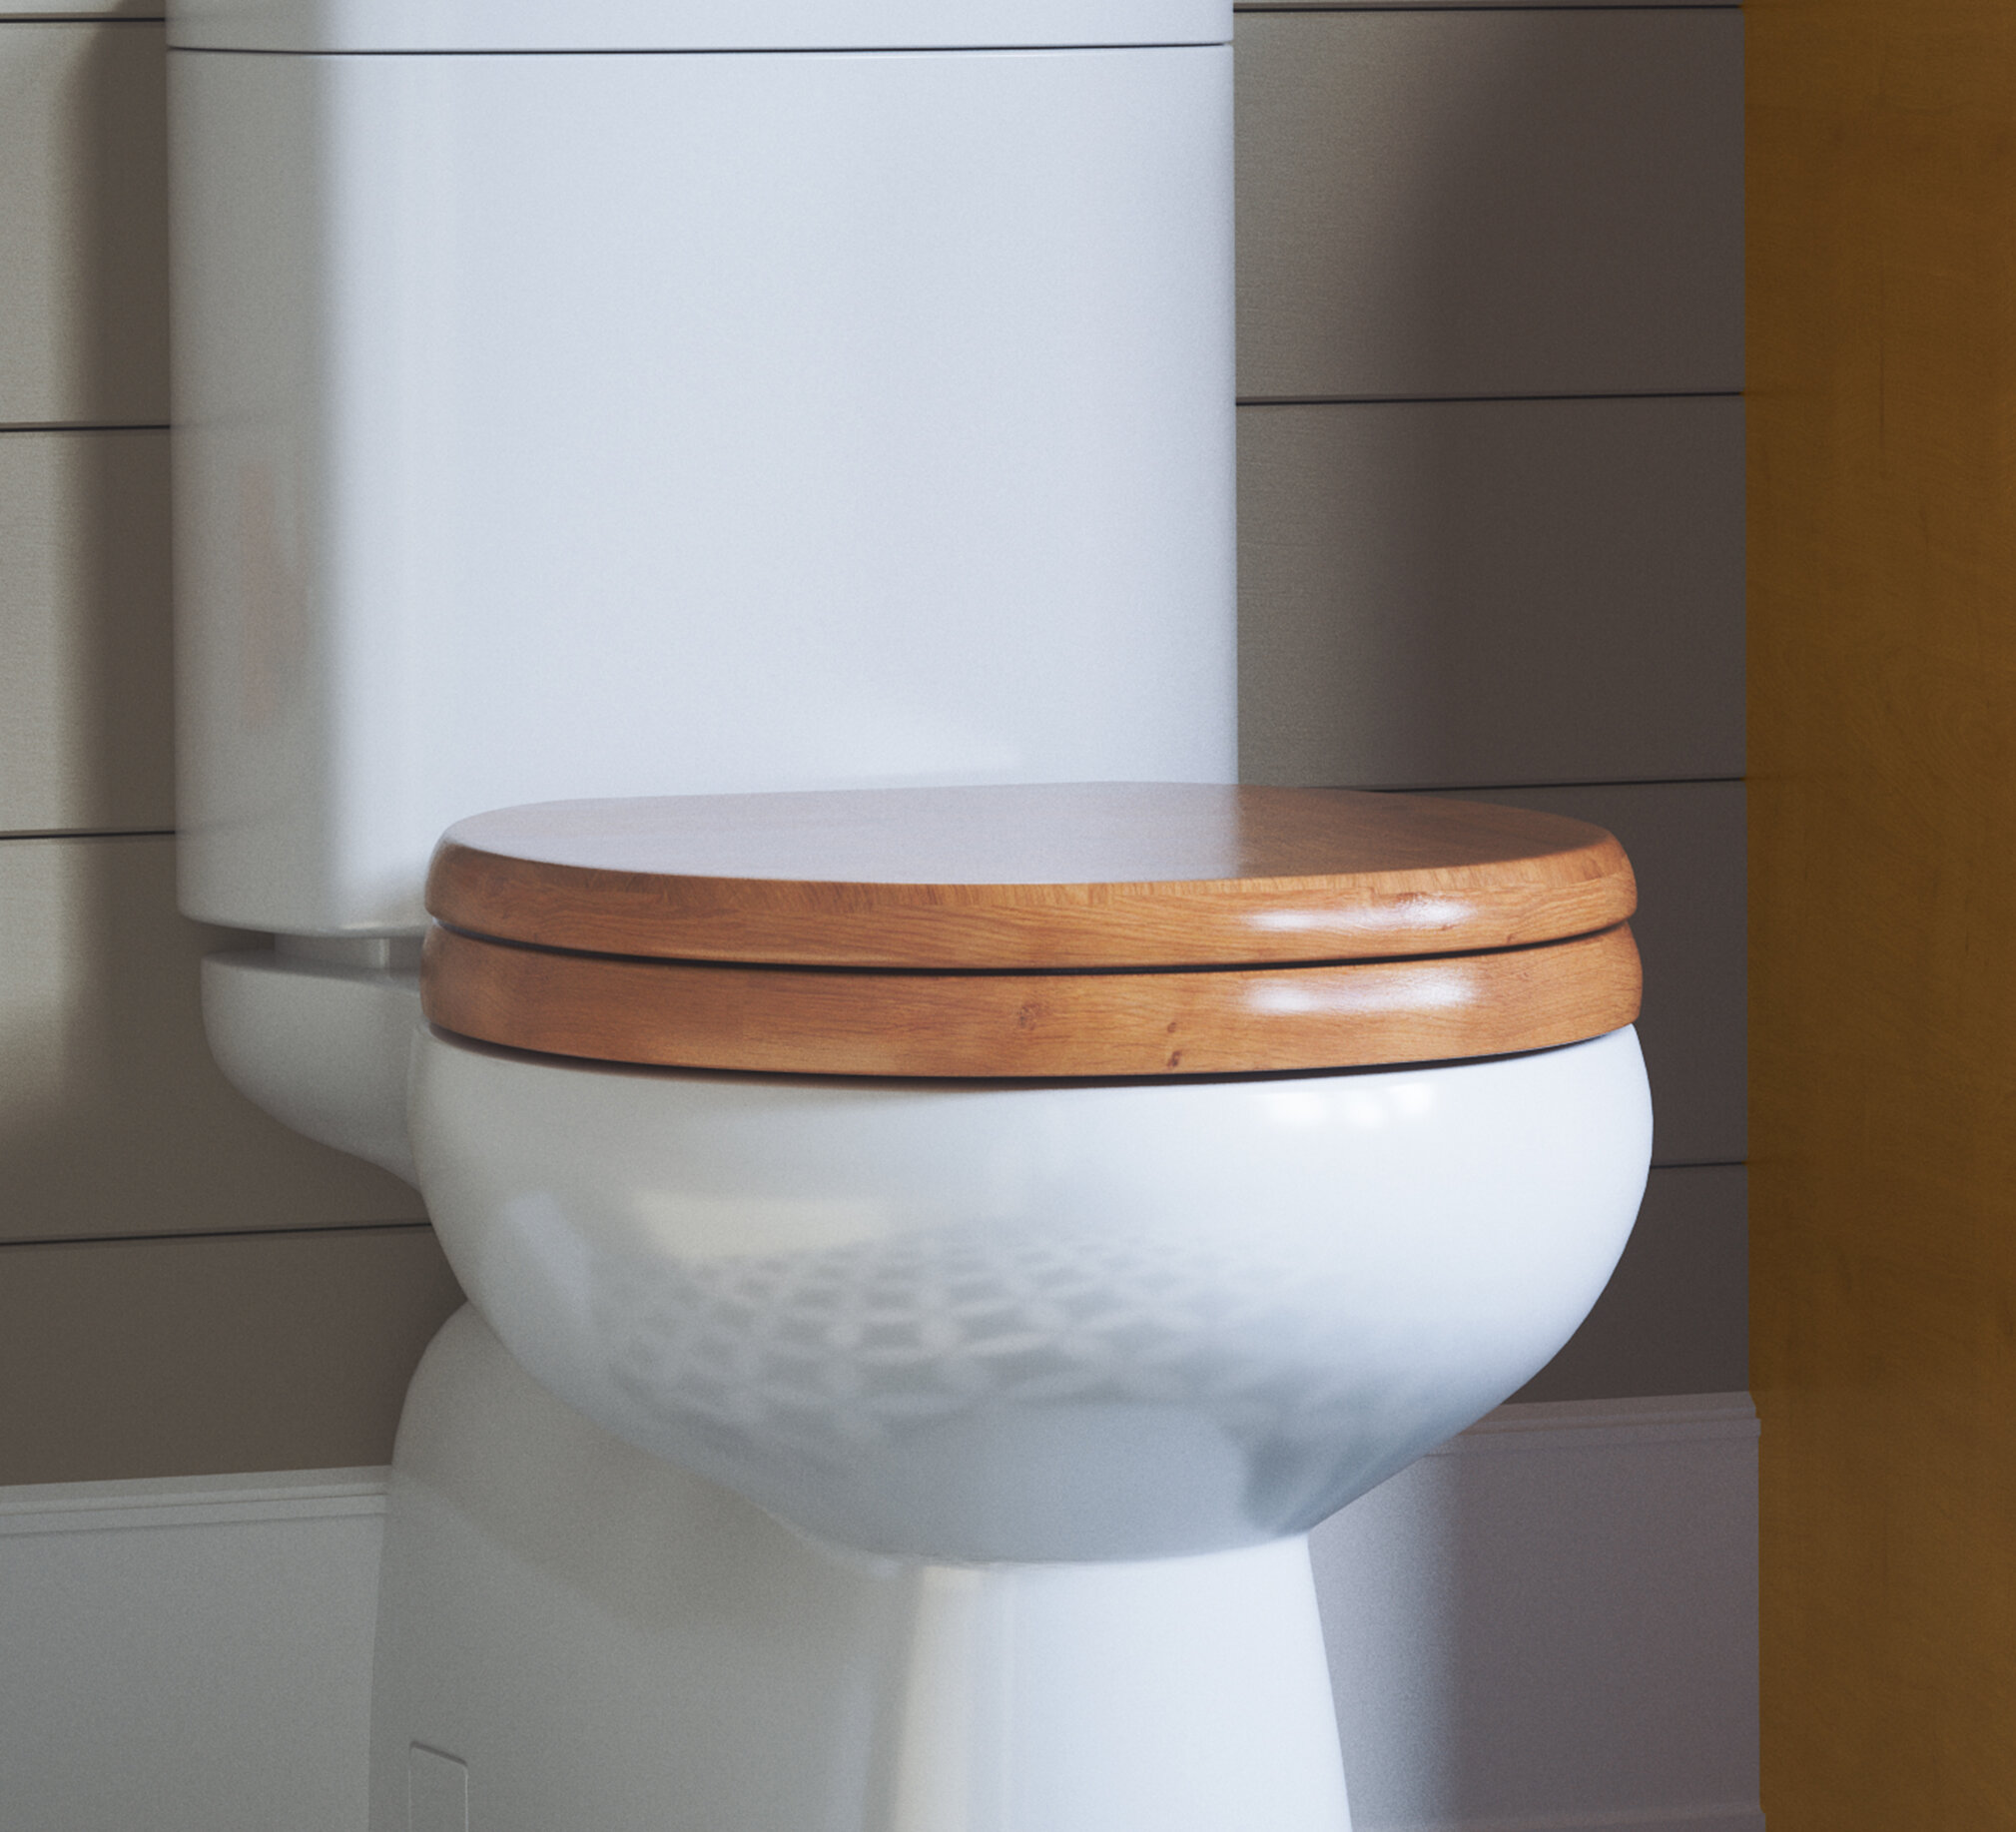 Awesome Dalton Round Closed Front Toilet Seat In Honey Oak Theyellowbook Wood Chair Design Ideas Theyellowbookinfo